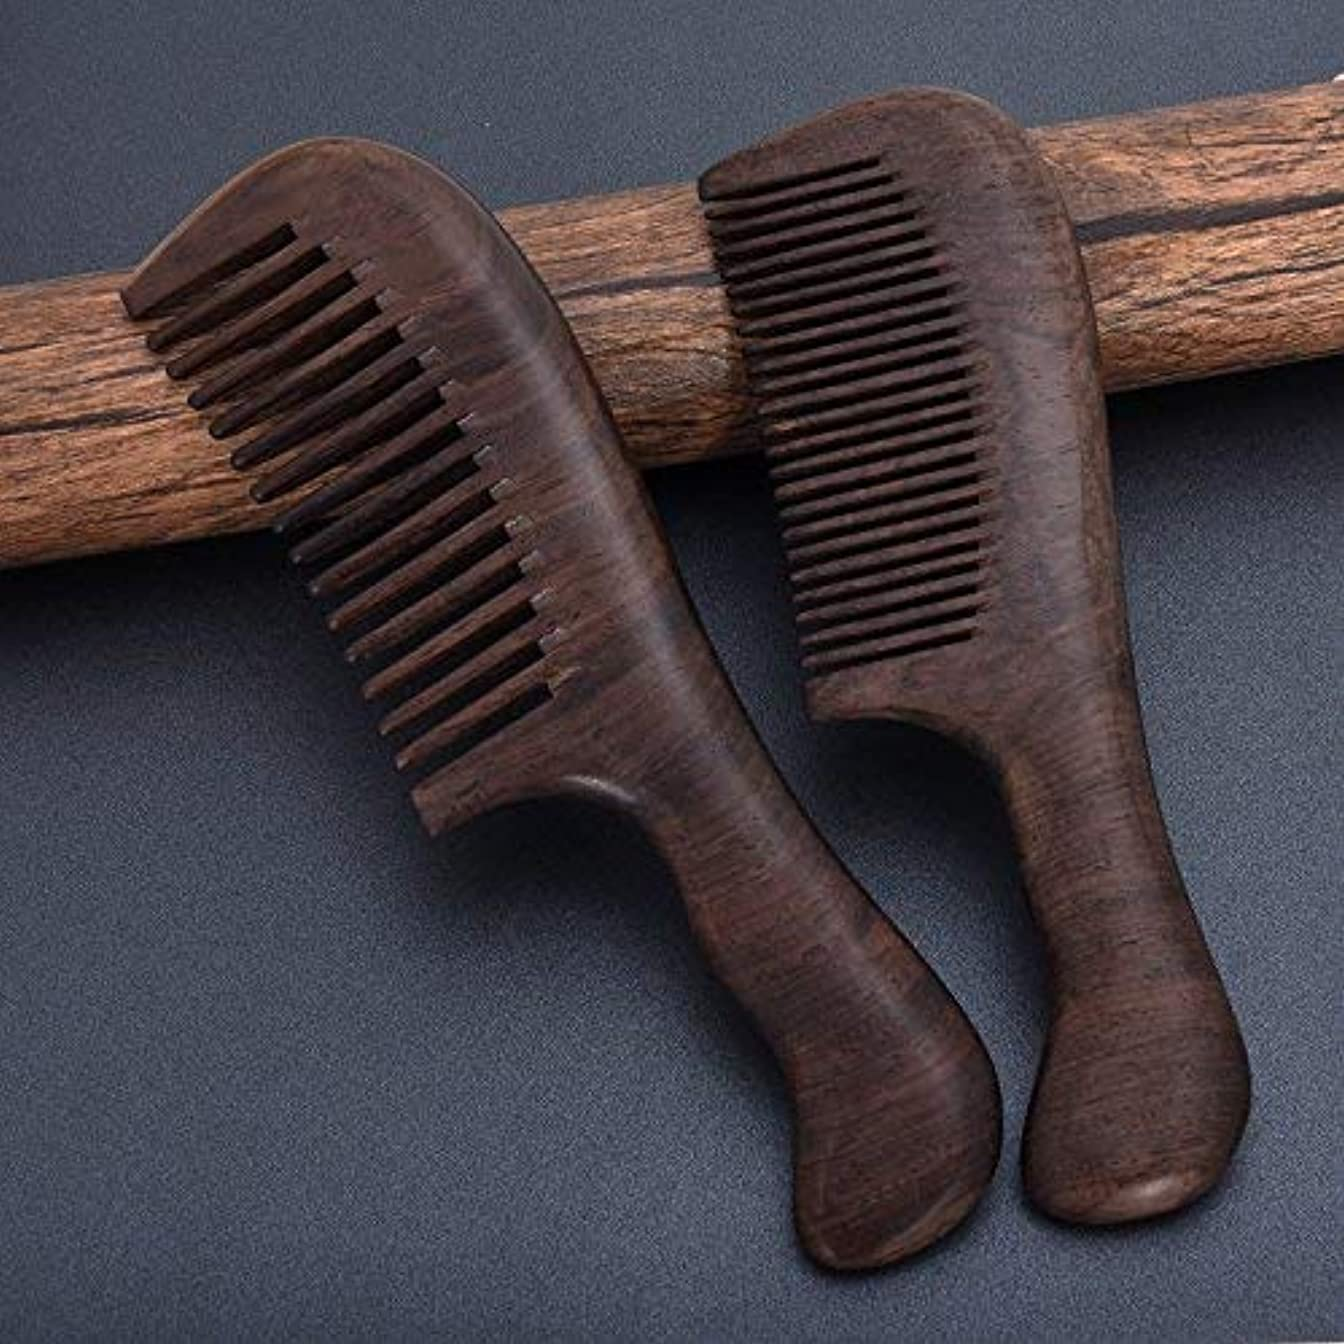 に付けるセール添加剤Black Sandalwood Hair Comb, Pack of 2 Anti-static 8 inches Wooden Comb Set with Natural Aroma, A Standard Comb...